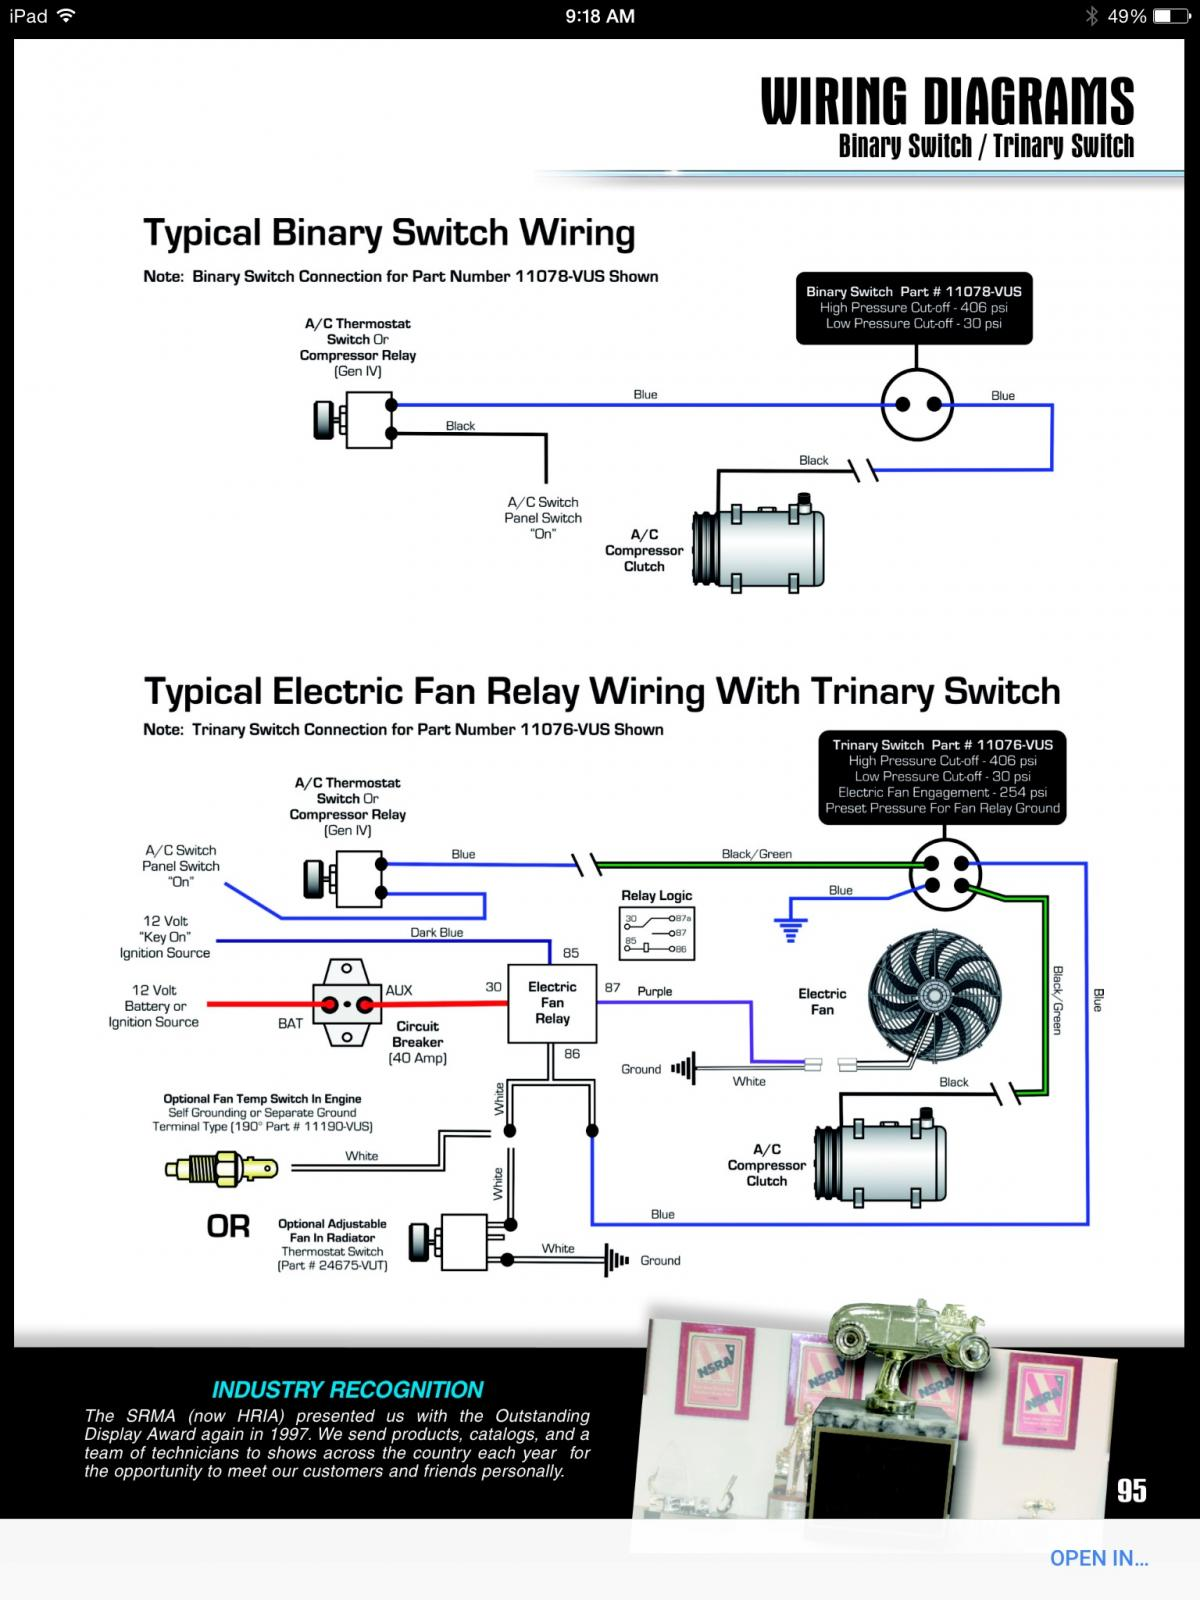 ac binary switch wiring diagram online schematic diagram u2022 rh holyoak co Master Disconnect Switch Wiring Diagram Start Stop Switch Wiring Diagram